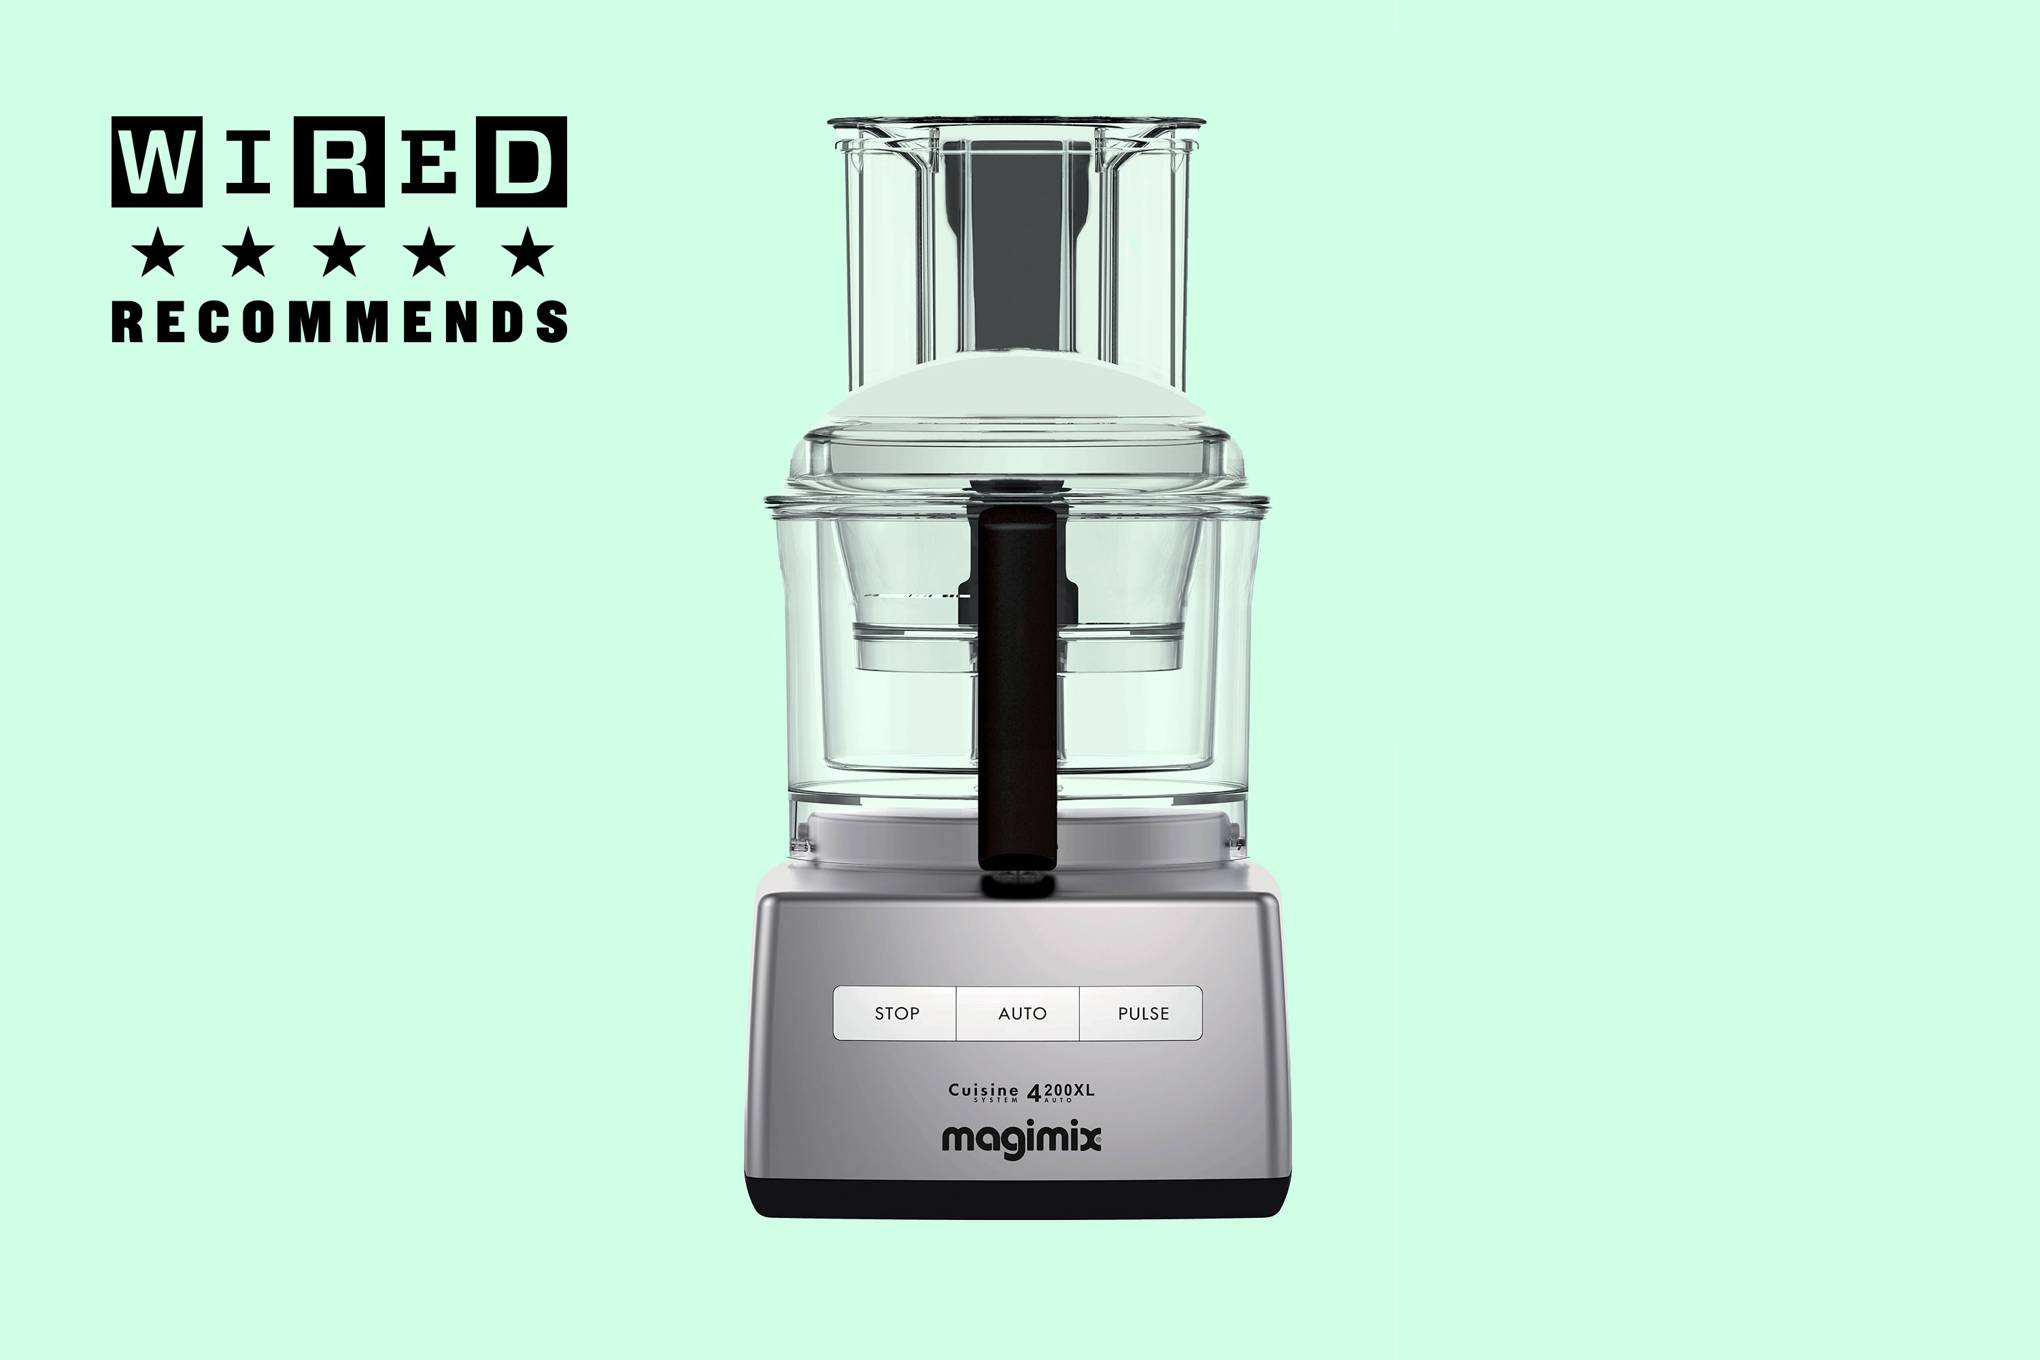 The best food processor for any budget